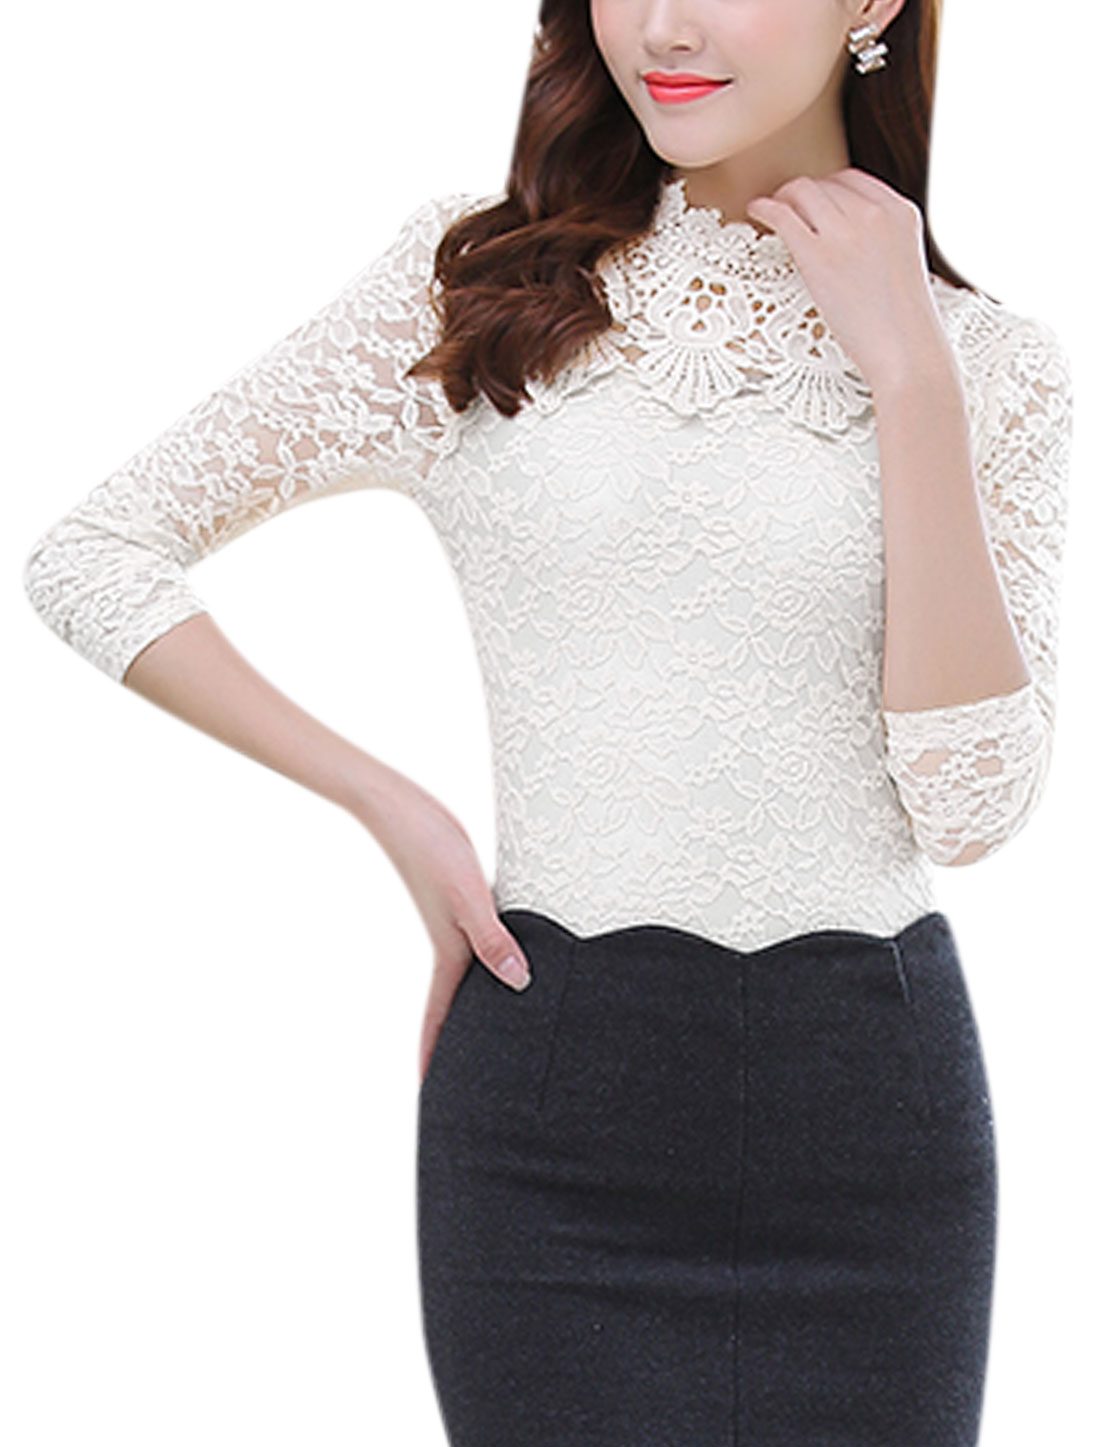 Women Long Sleeves Crochet Panel Floral Design Lace Shirt White S